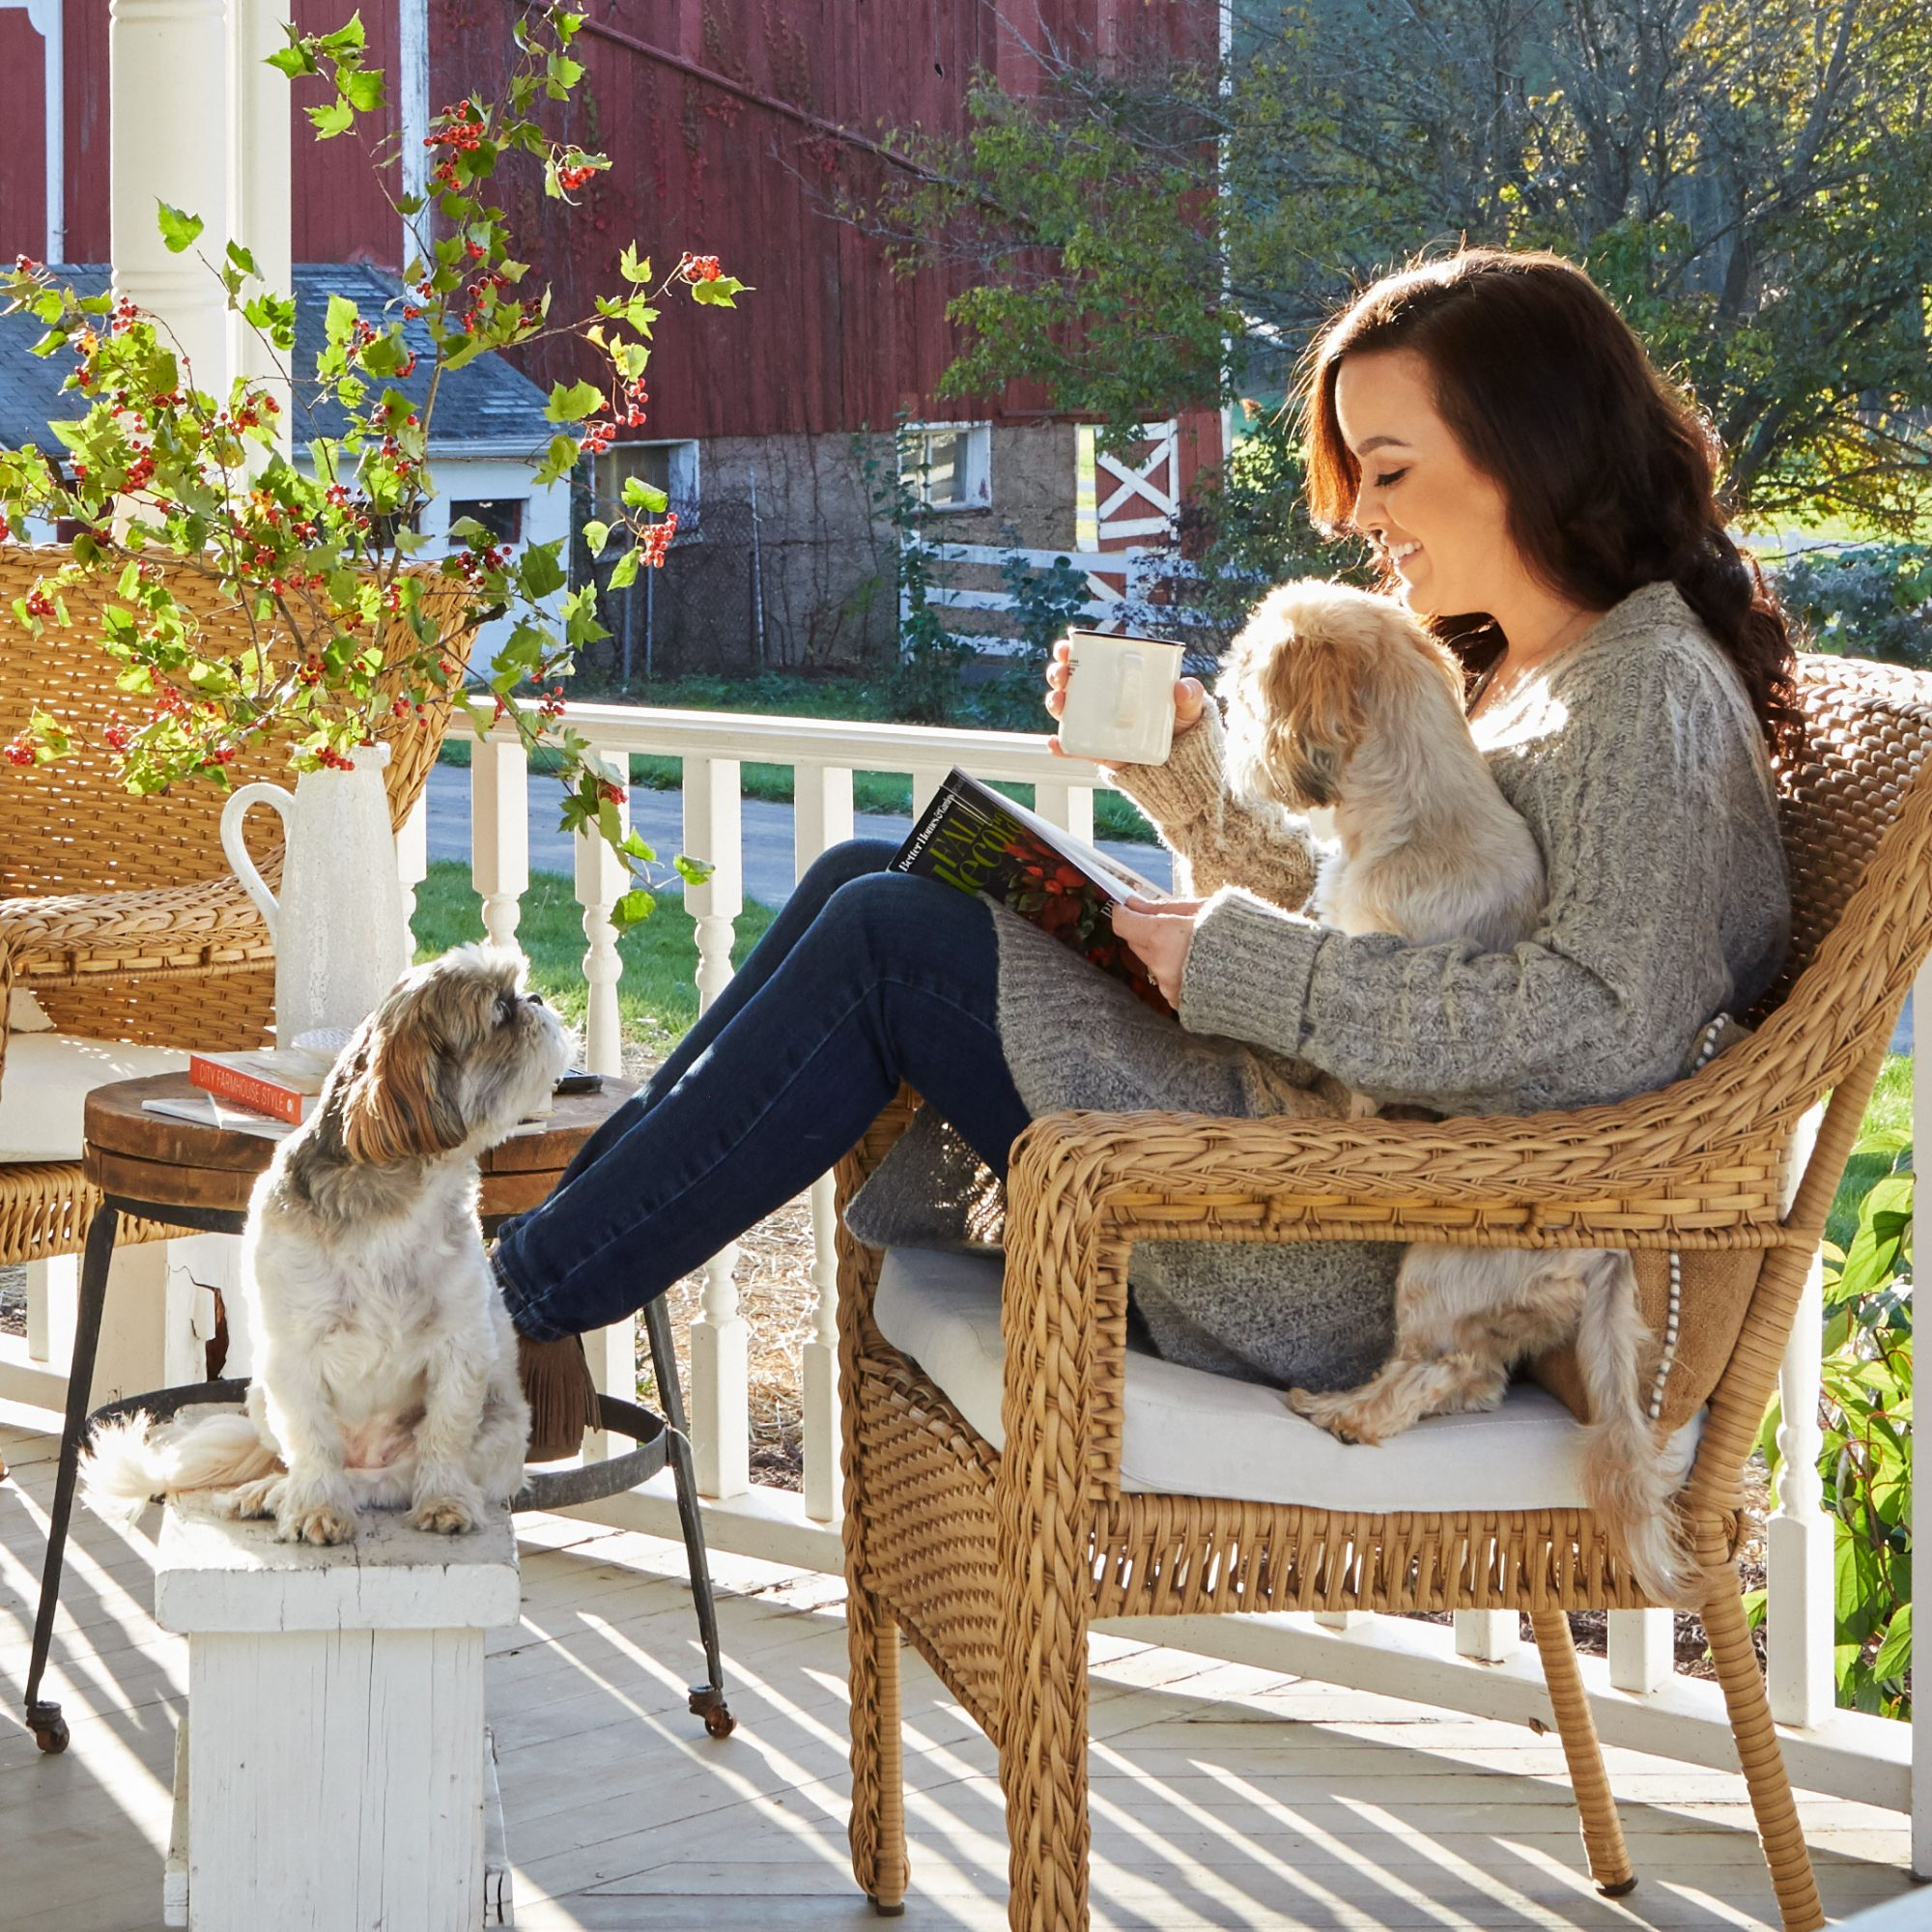 Dogs on porch